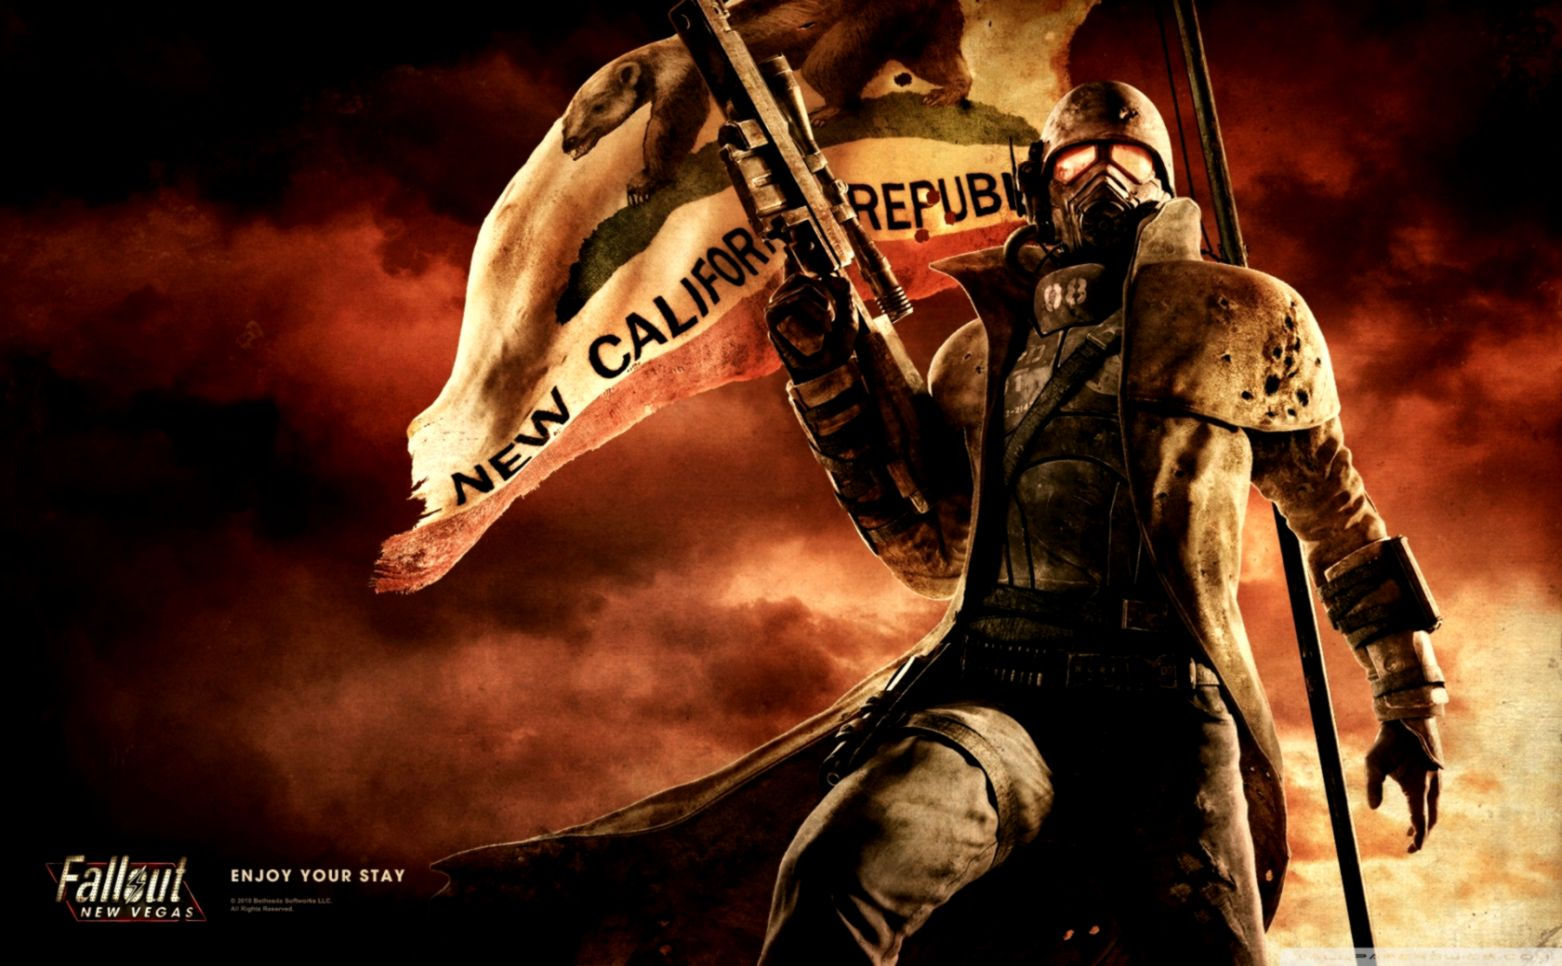 Fallout New Vegas Wallpaper Wide Wallpapers Simple